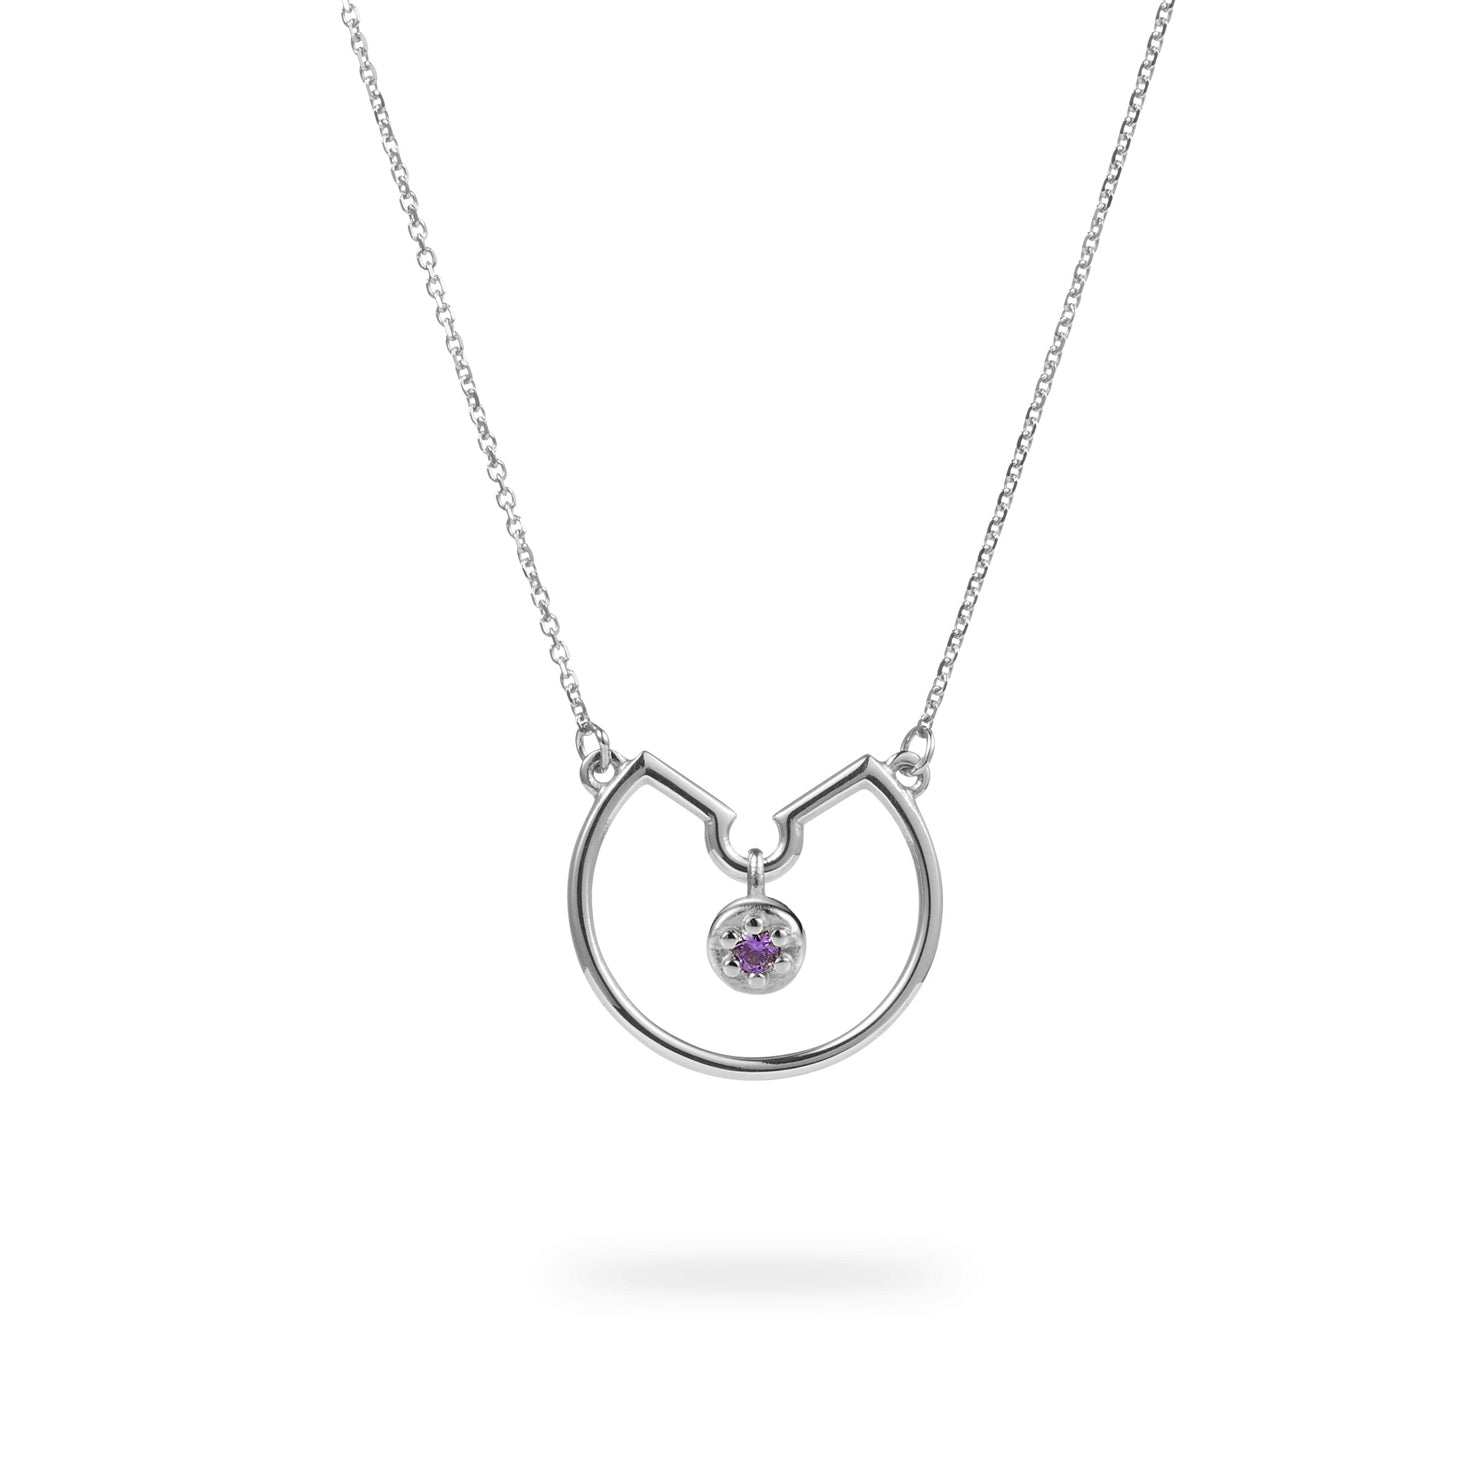 Luke Rose Jewellery silver amethyst hoop necklace